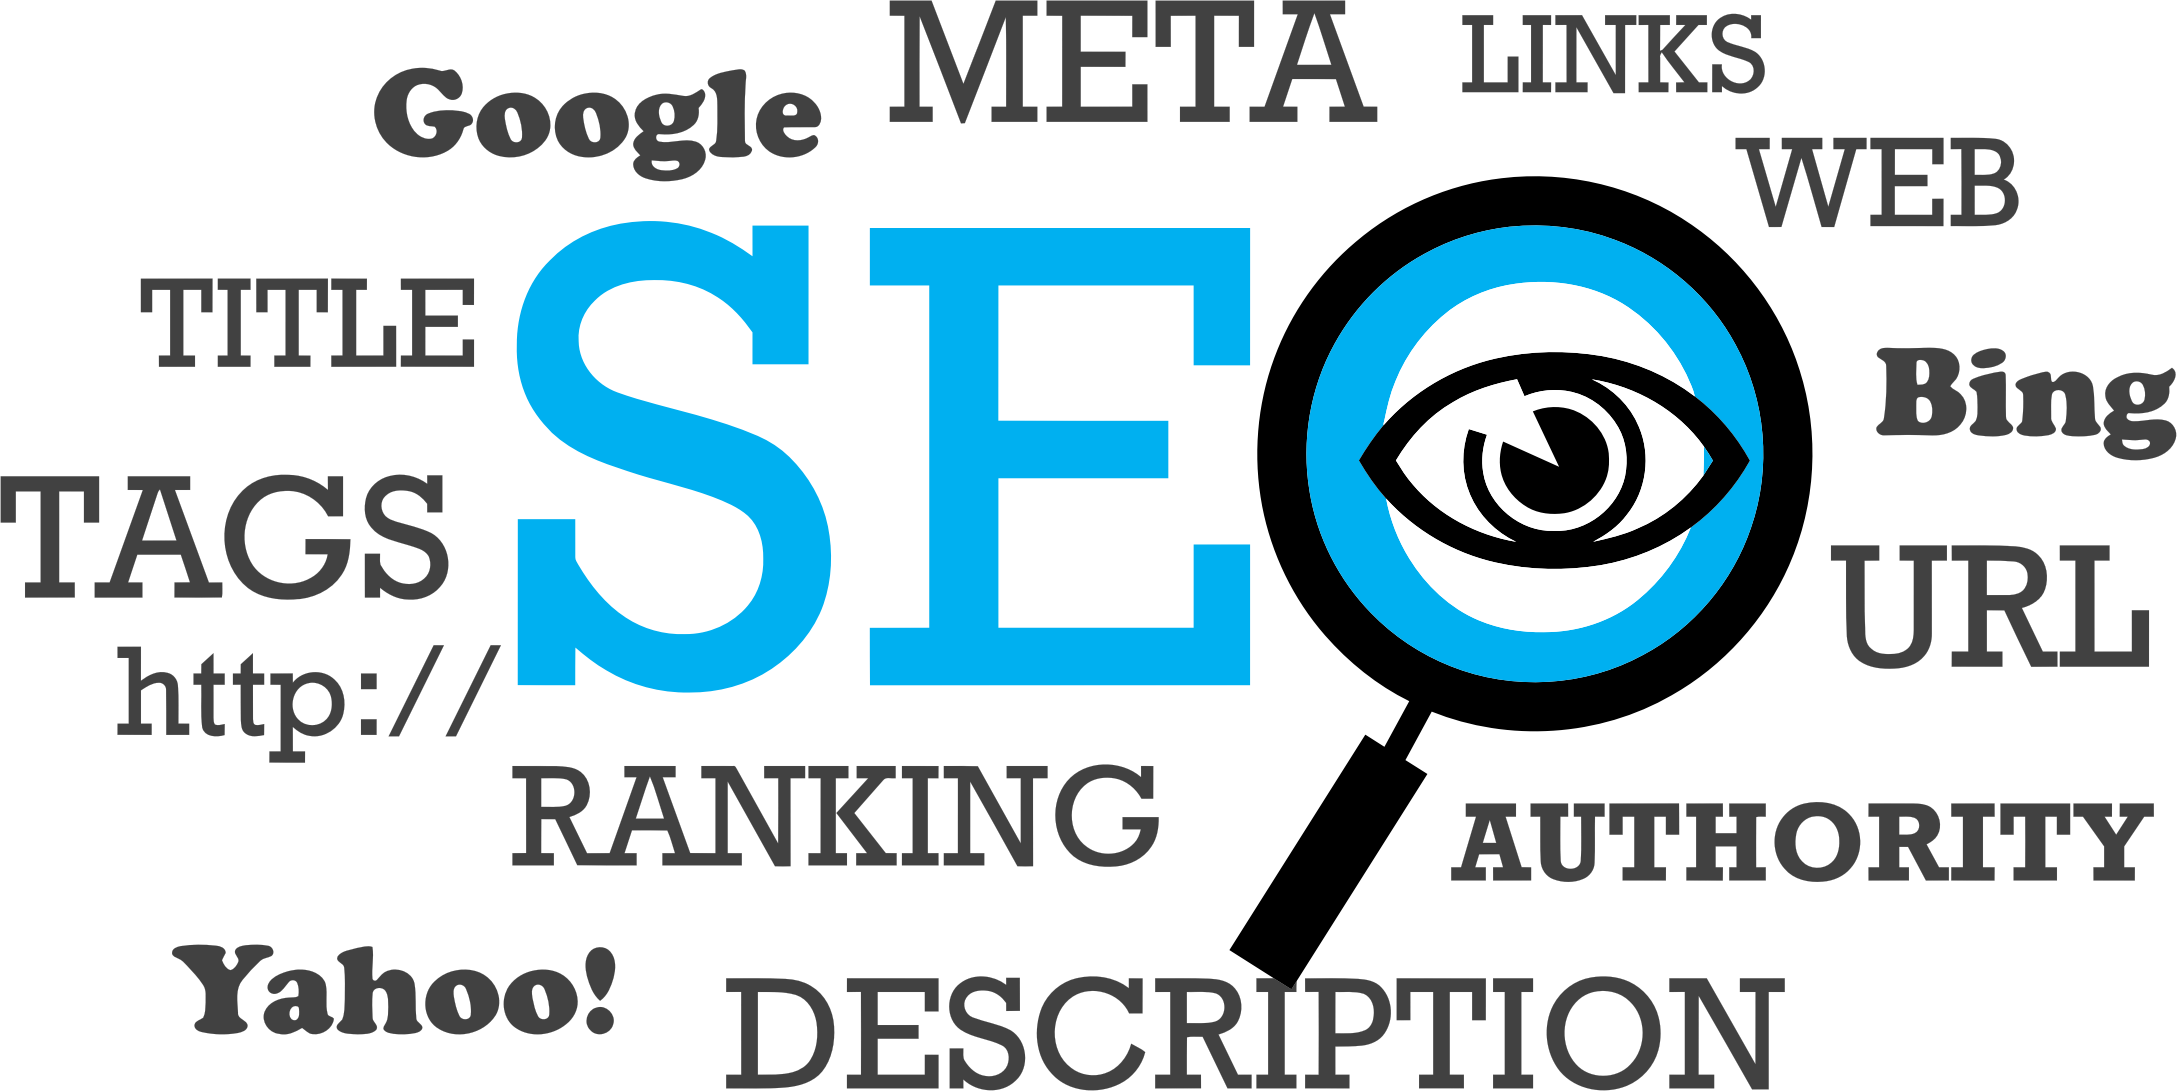 freeuse library Bibliography clipart search engine. Optimization ralcosoft verified costeffective.